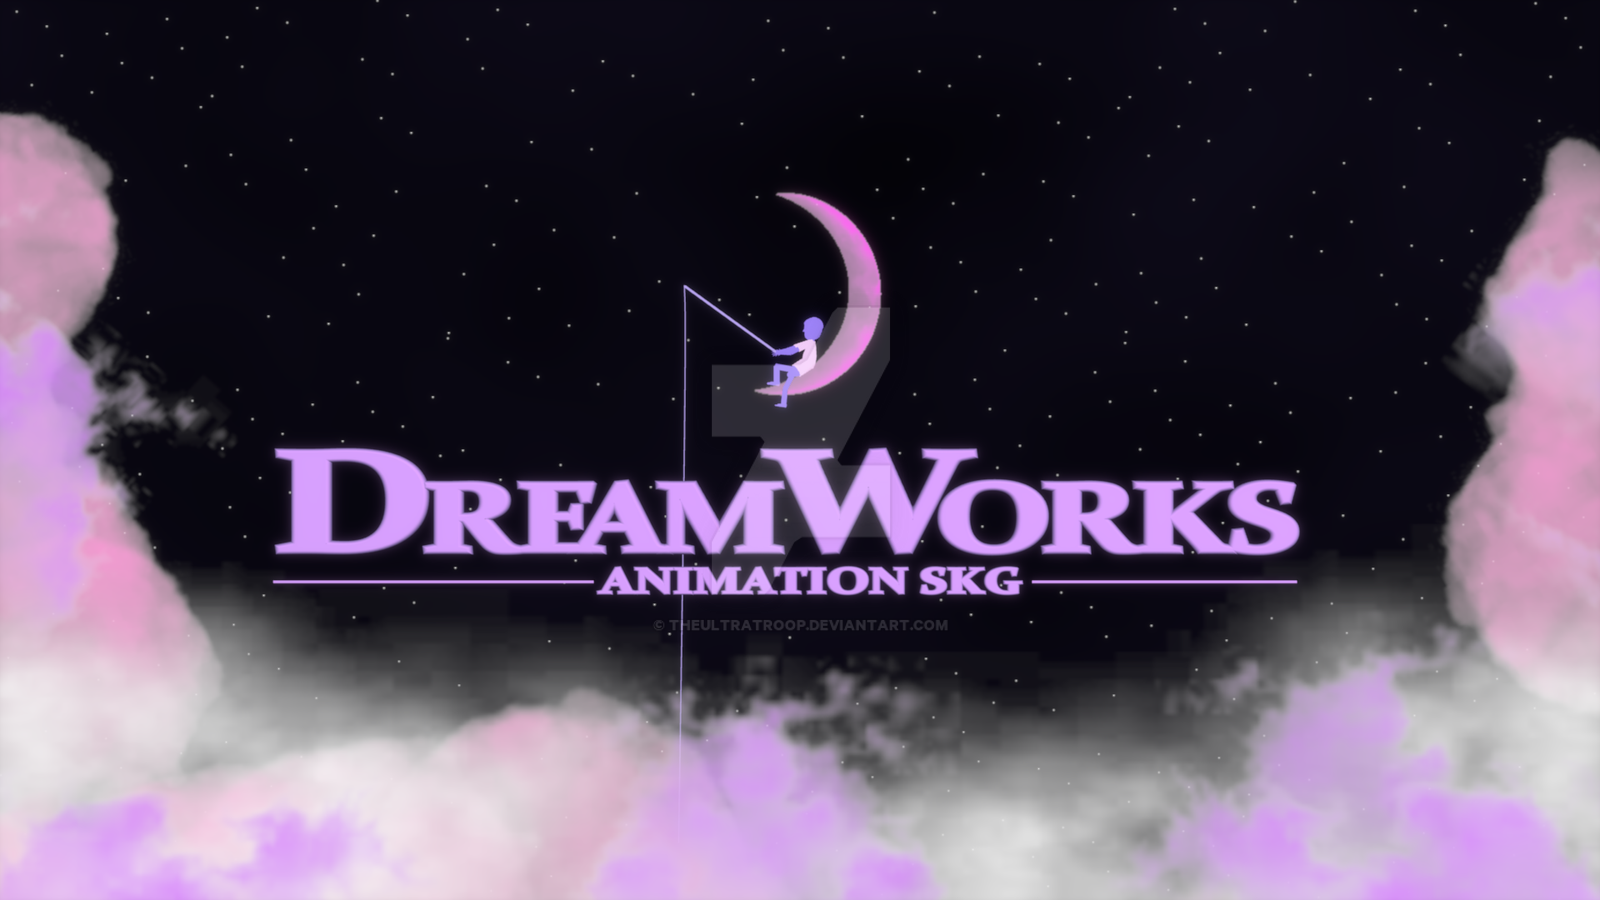 dreamworks animation logo 2010 remake by theultratroop on